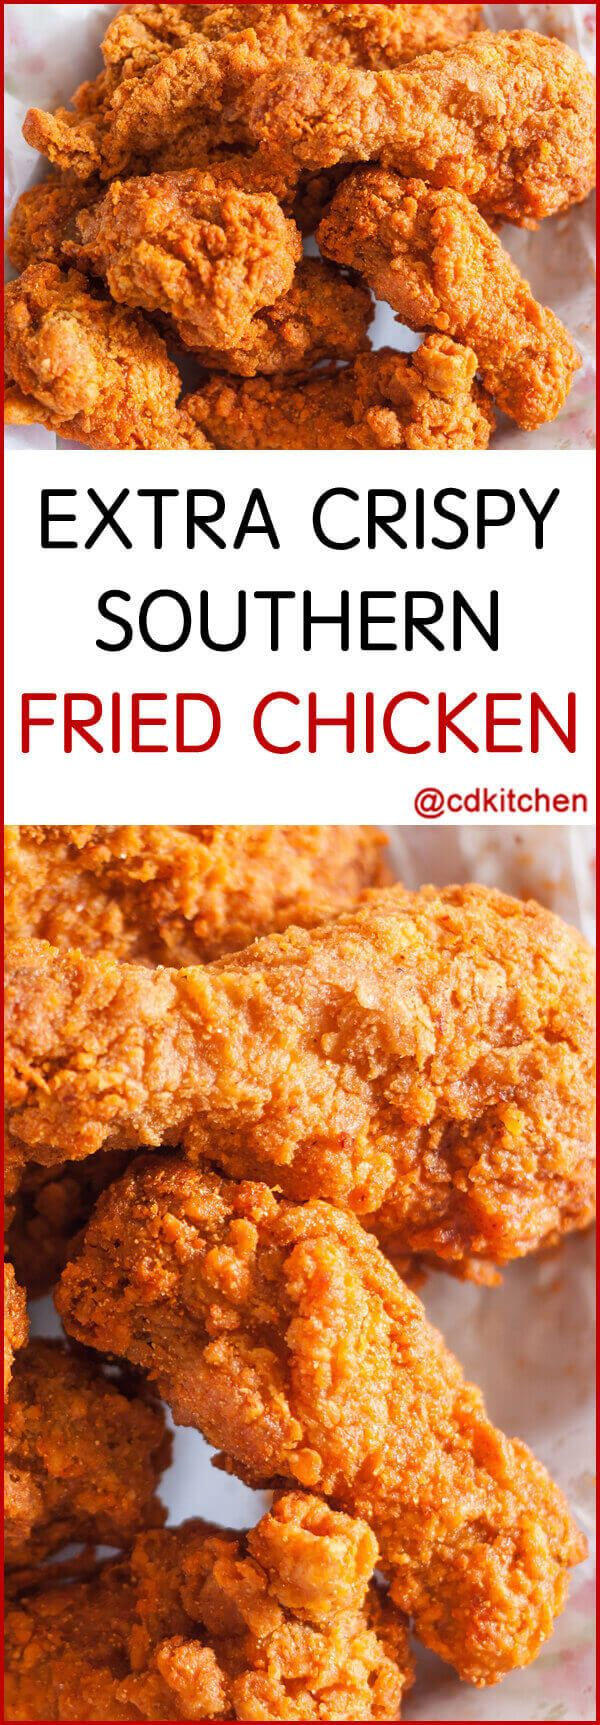 Photo of Extra Crispy Southern Fried Chicken Recipe | CDKitchen.com